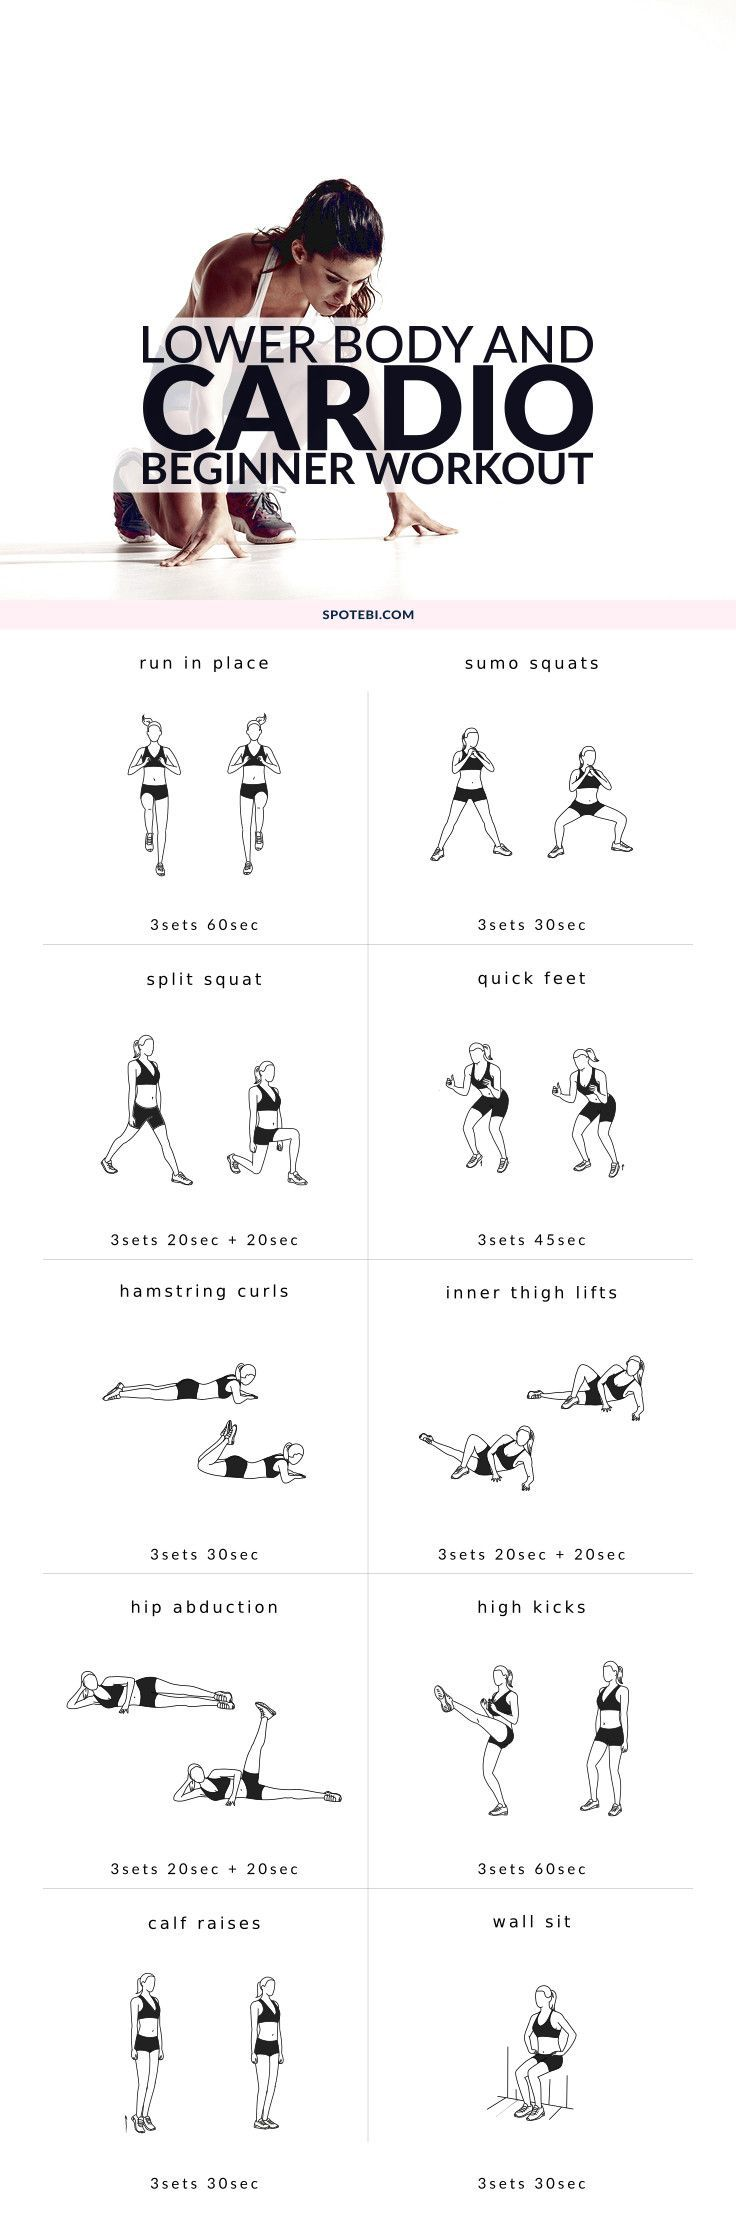 Start sculpting your lower body with this 20 minute beginner workout routine. A mix of cardio and strength training moves to burn off body fat and trim your inner and outer thighs, hips, quads, hamstrings, glutes and calves.